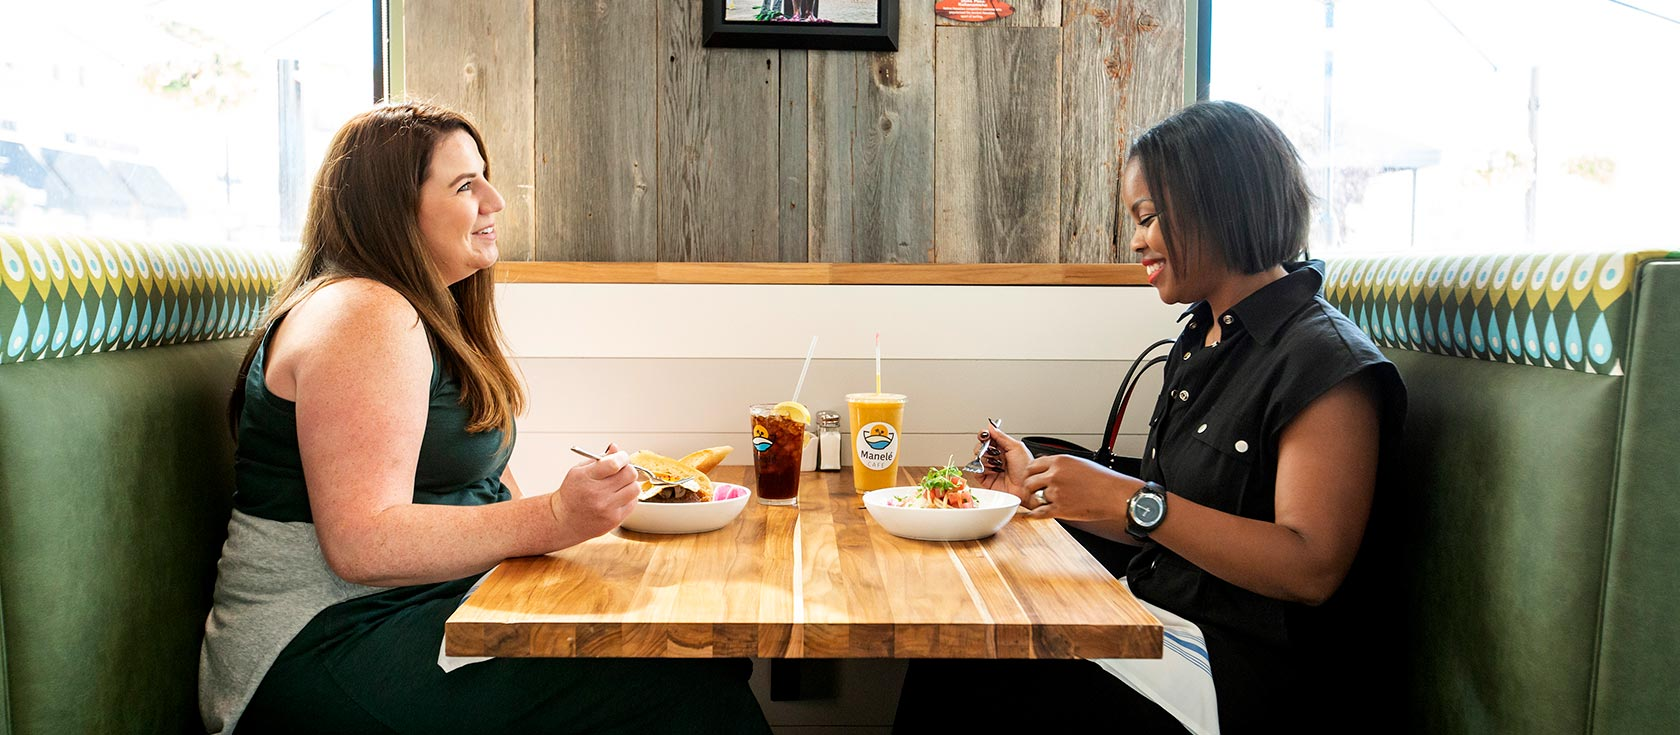 Two young women seated in booth enjoying lunch